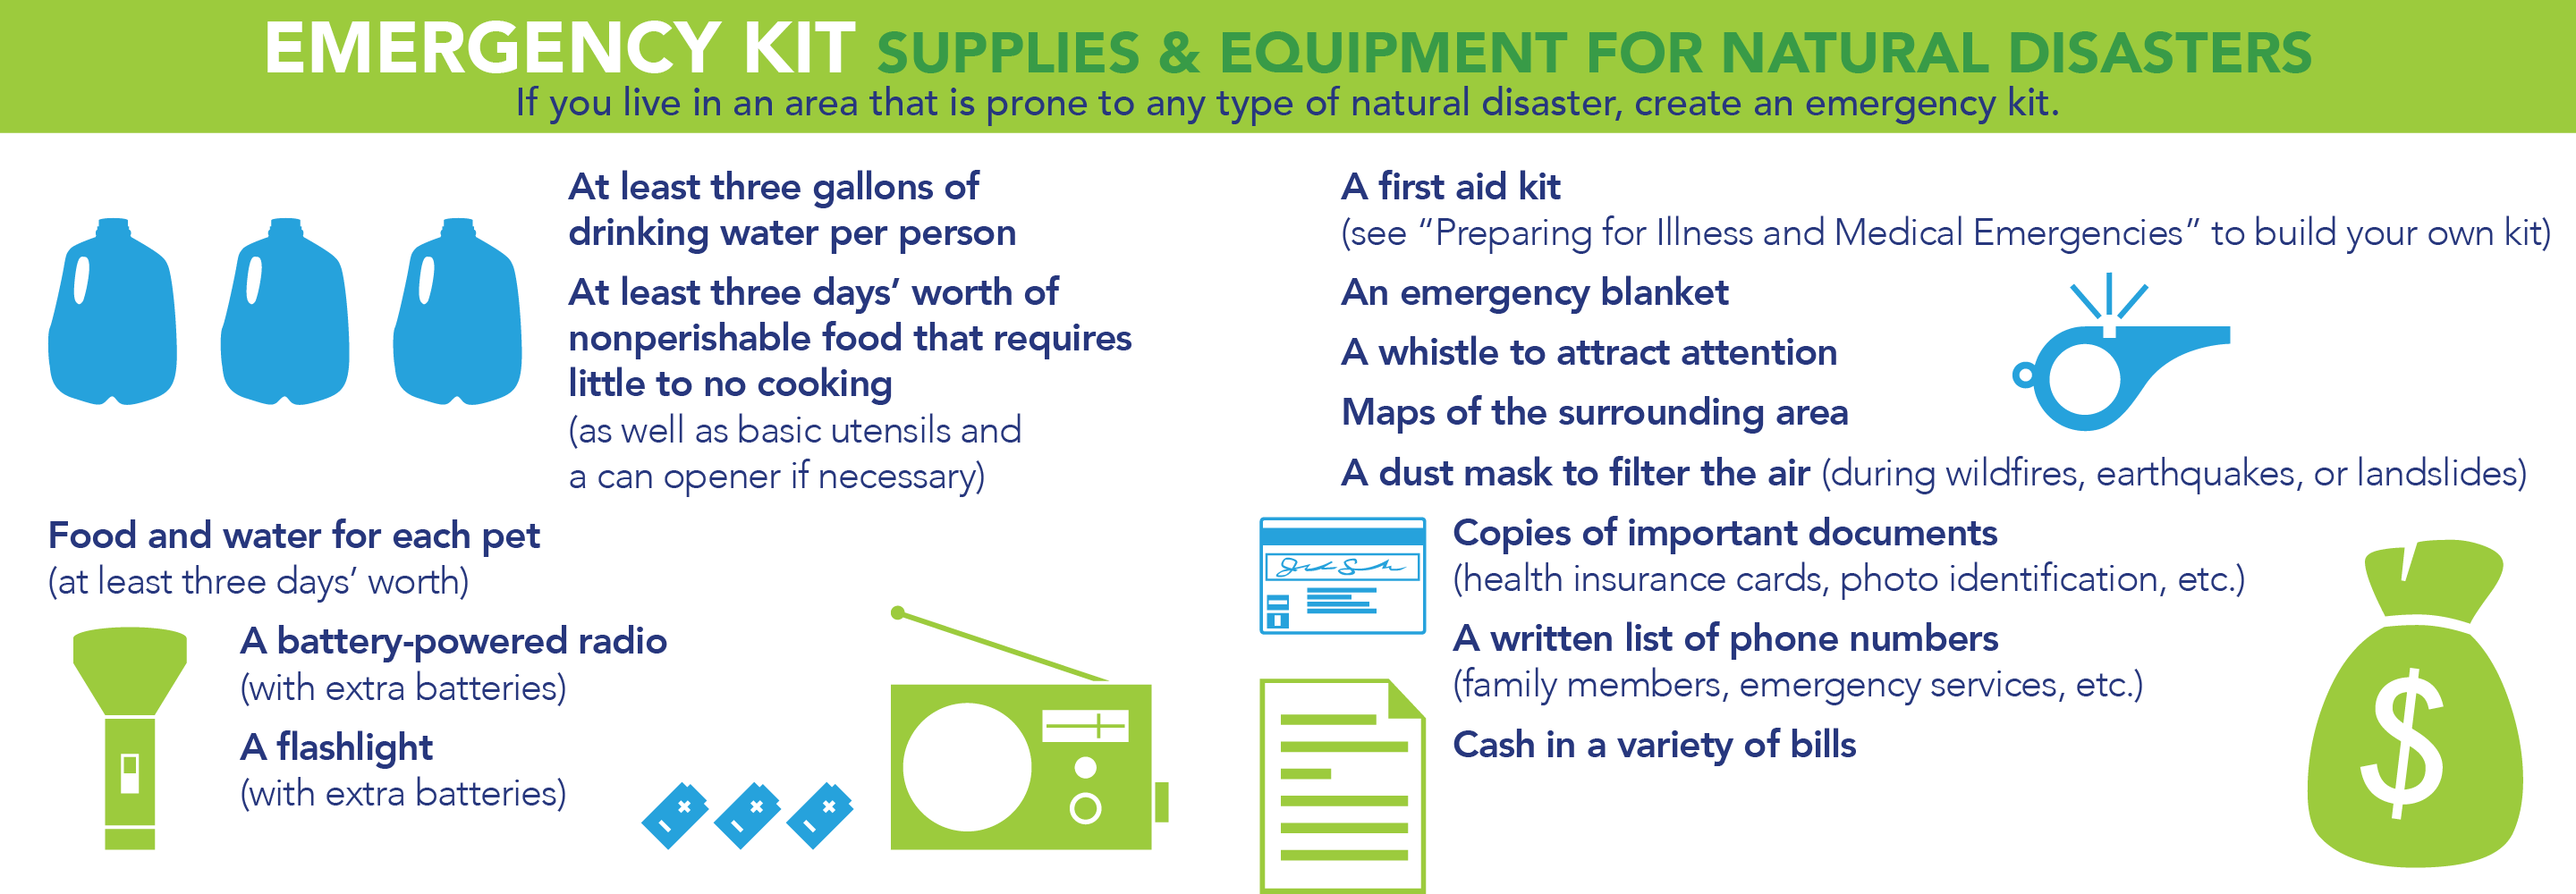 "Emergency Kit Supplies and Equipment for Natural Disasters; If you live in an area that is prone to any type of natural disaster, create an emergency kit. It should include: at least three gallons of drinking water per person; at least three days' worth of nonperishable food that requires little to no cooking (as well as basic utensils and a can opener if necessary); food and water for each pet (at least three days' worth); a battery-powered radio (with extra batteries); a flashlight (with extra batteries); a first aid kit (see ""Preparing for Illness and Medical Emergencies"" to build your own kit); an emergency blanket; a whistle to attract attention; maps of the surrounding area; a dust mask to filter the air (during wildfires, earthquakes, or landslides); copies of important documents (health insurance cards, photo identification, etc.); a written list of phone numbers (family members, emergency services, etc.); and cash in a variety of bills."